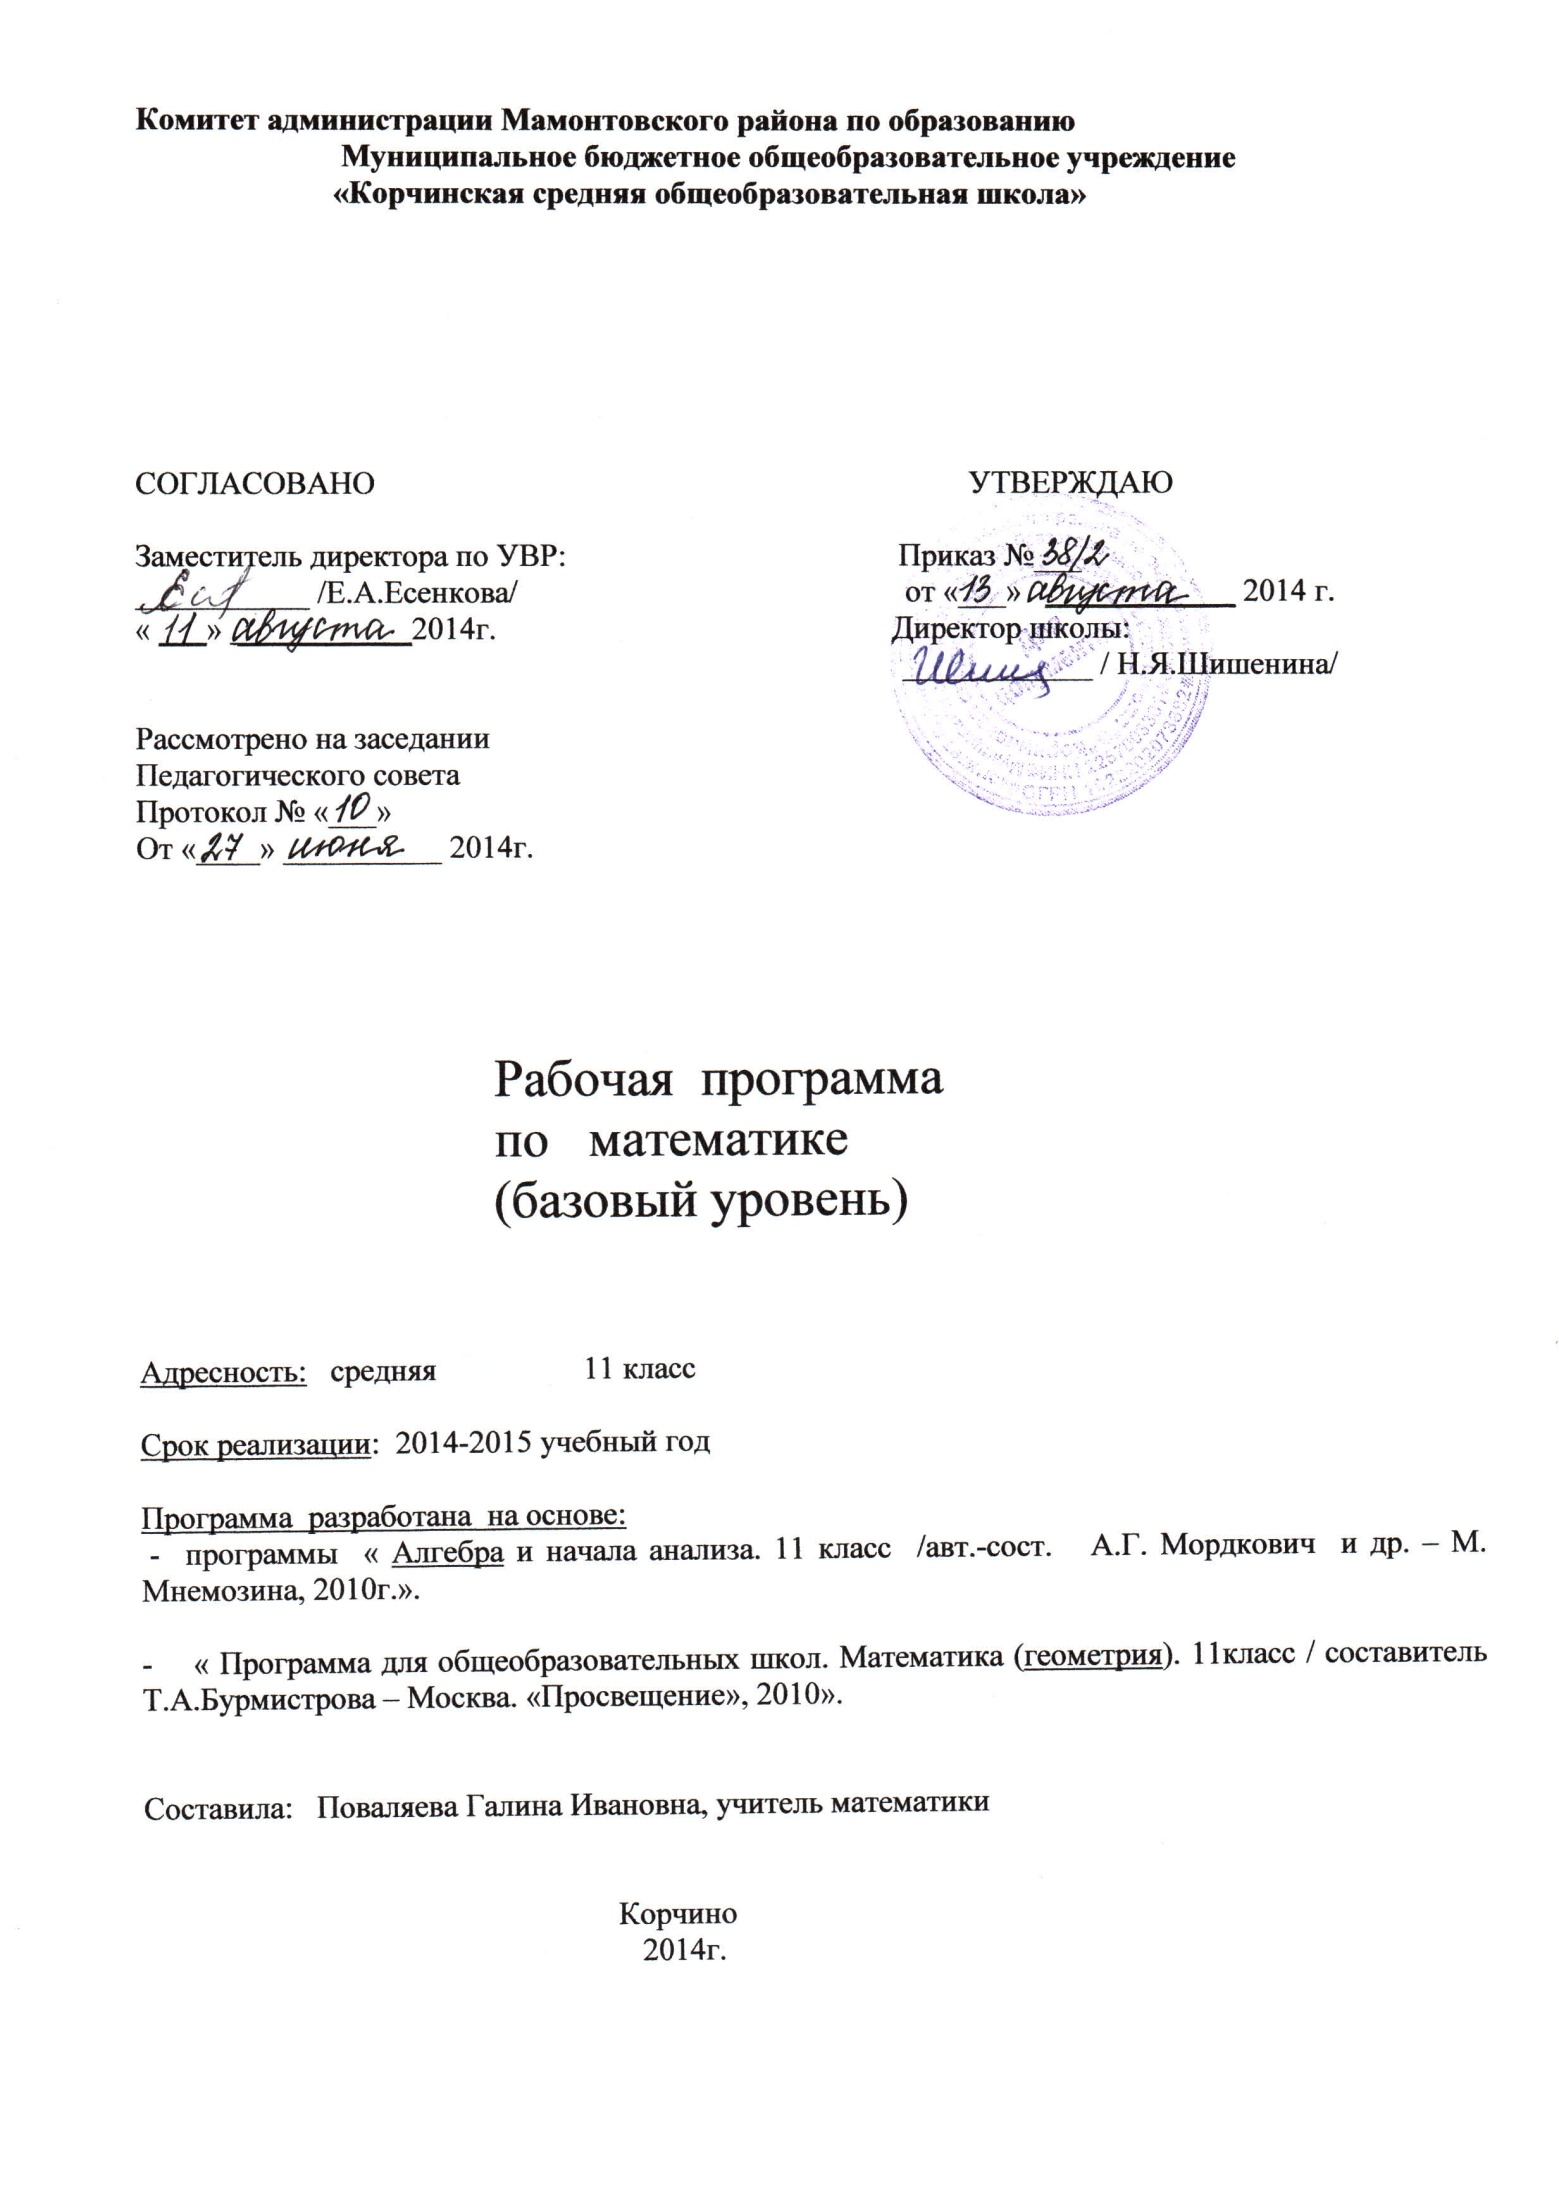 C:\Documents and Settings\Admin\Рабочий стол\13-OKT-2014\140446.JPG